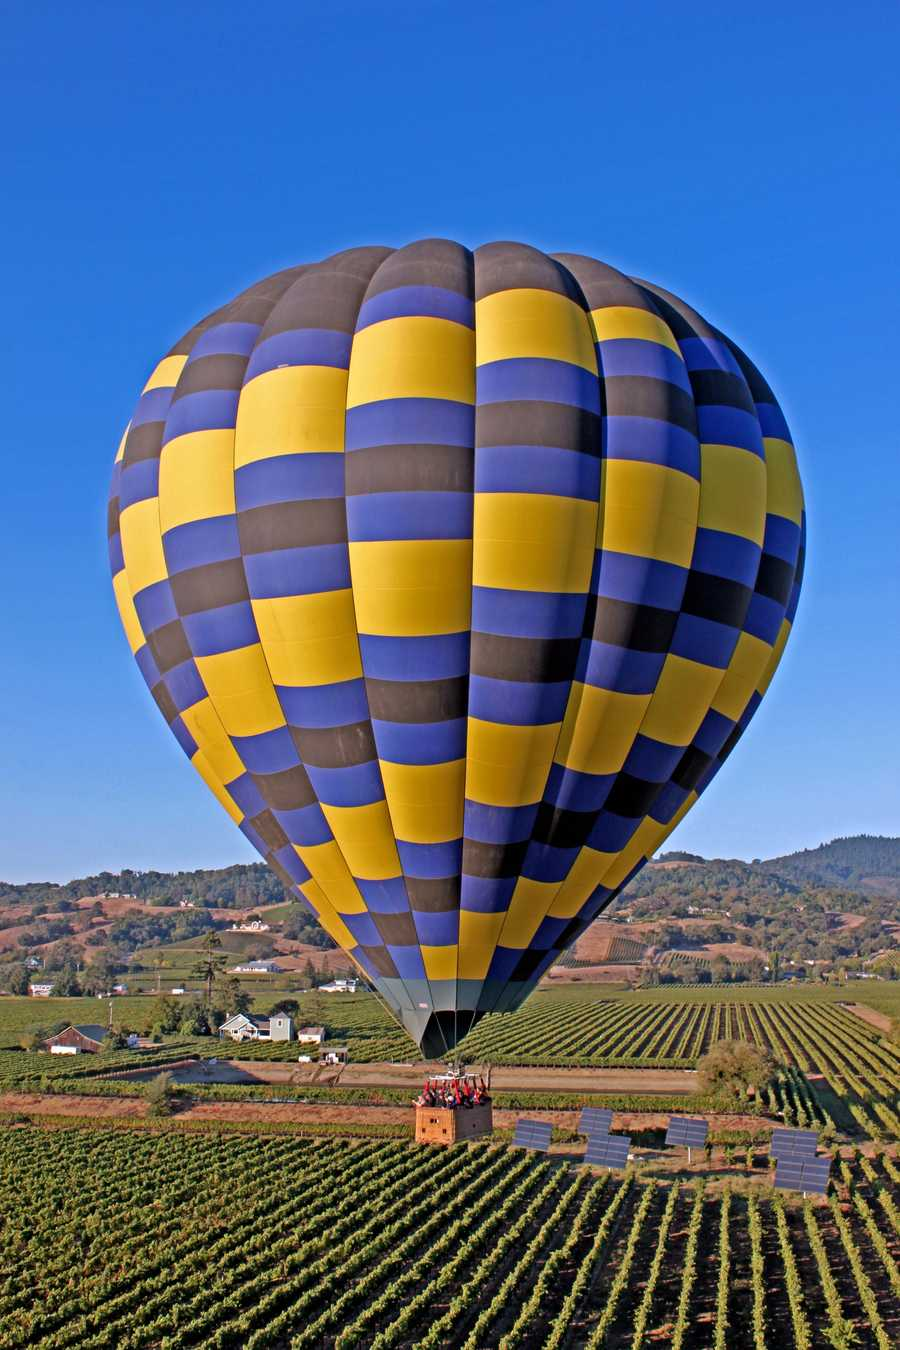 16. The Napa region got a boost form the Paris Wine Tasting of 1976 when Napa Valley Chardonnay and Cabernet Sauvignon were featured, beating out some famous French labels in a blind tasting competition.